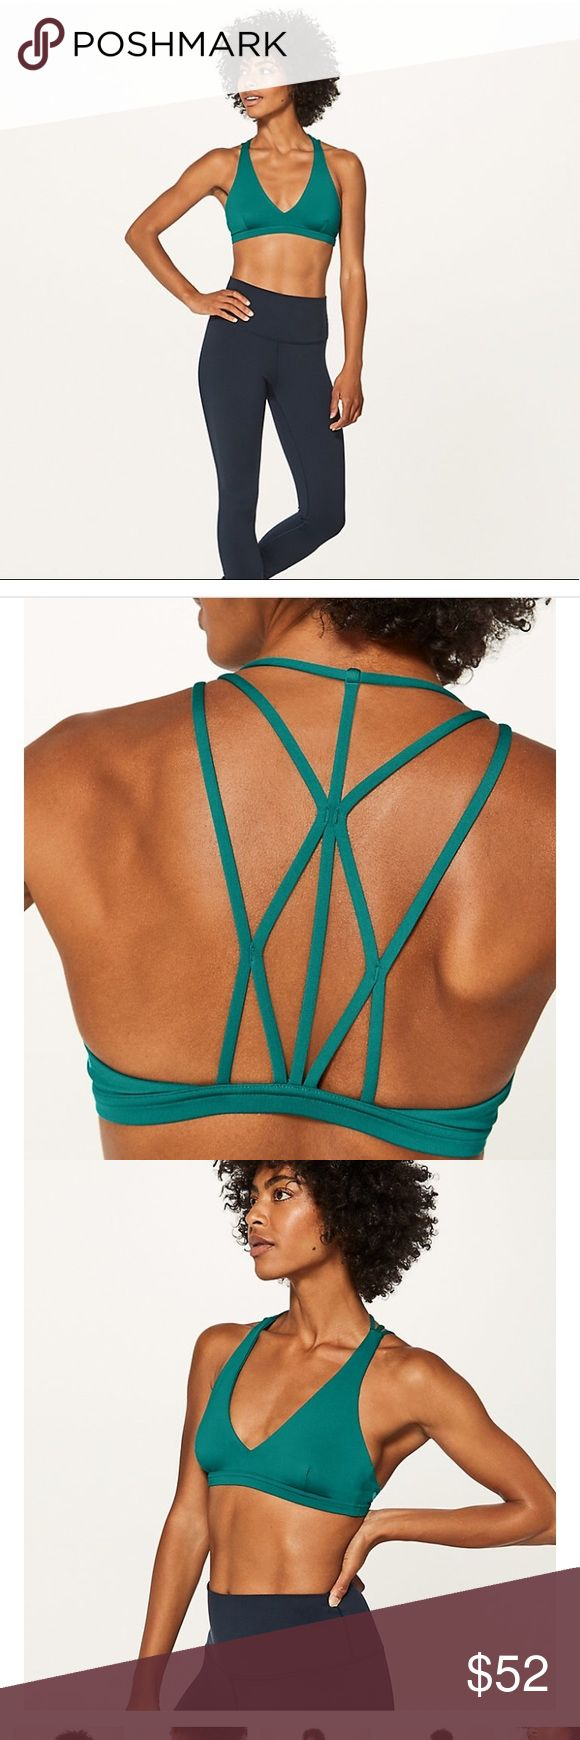 Lululemon Raise the Barre sports bra size 4 Brand new with tags, except I accidentally ripped off the size 4 tag on the bra (see pic). Just bought this without trying it on and accidentally threw away the receipt 🙄 🤦🏻♀️.  I'm always a size 4 in the Free to Be bras so I assumed I would be the same size in this one, but it's a size too big and now I can't return it 😞. I'm a 32B for size reference.  Bundle and save!! lululemon athletica Other